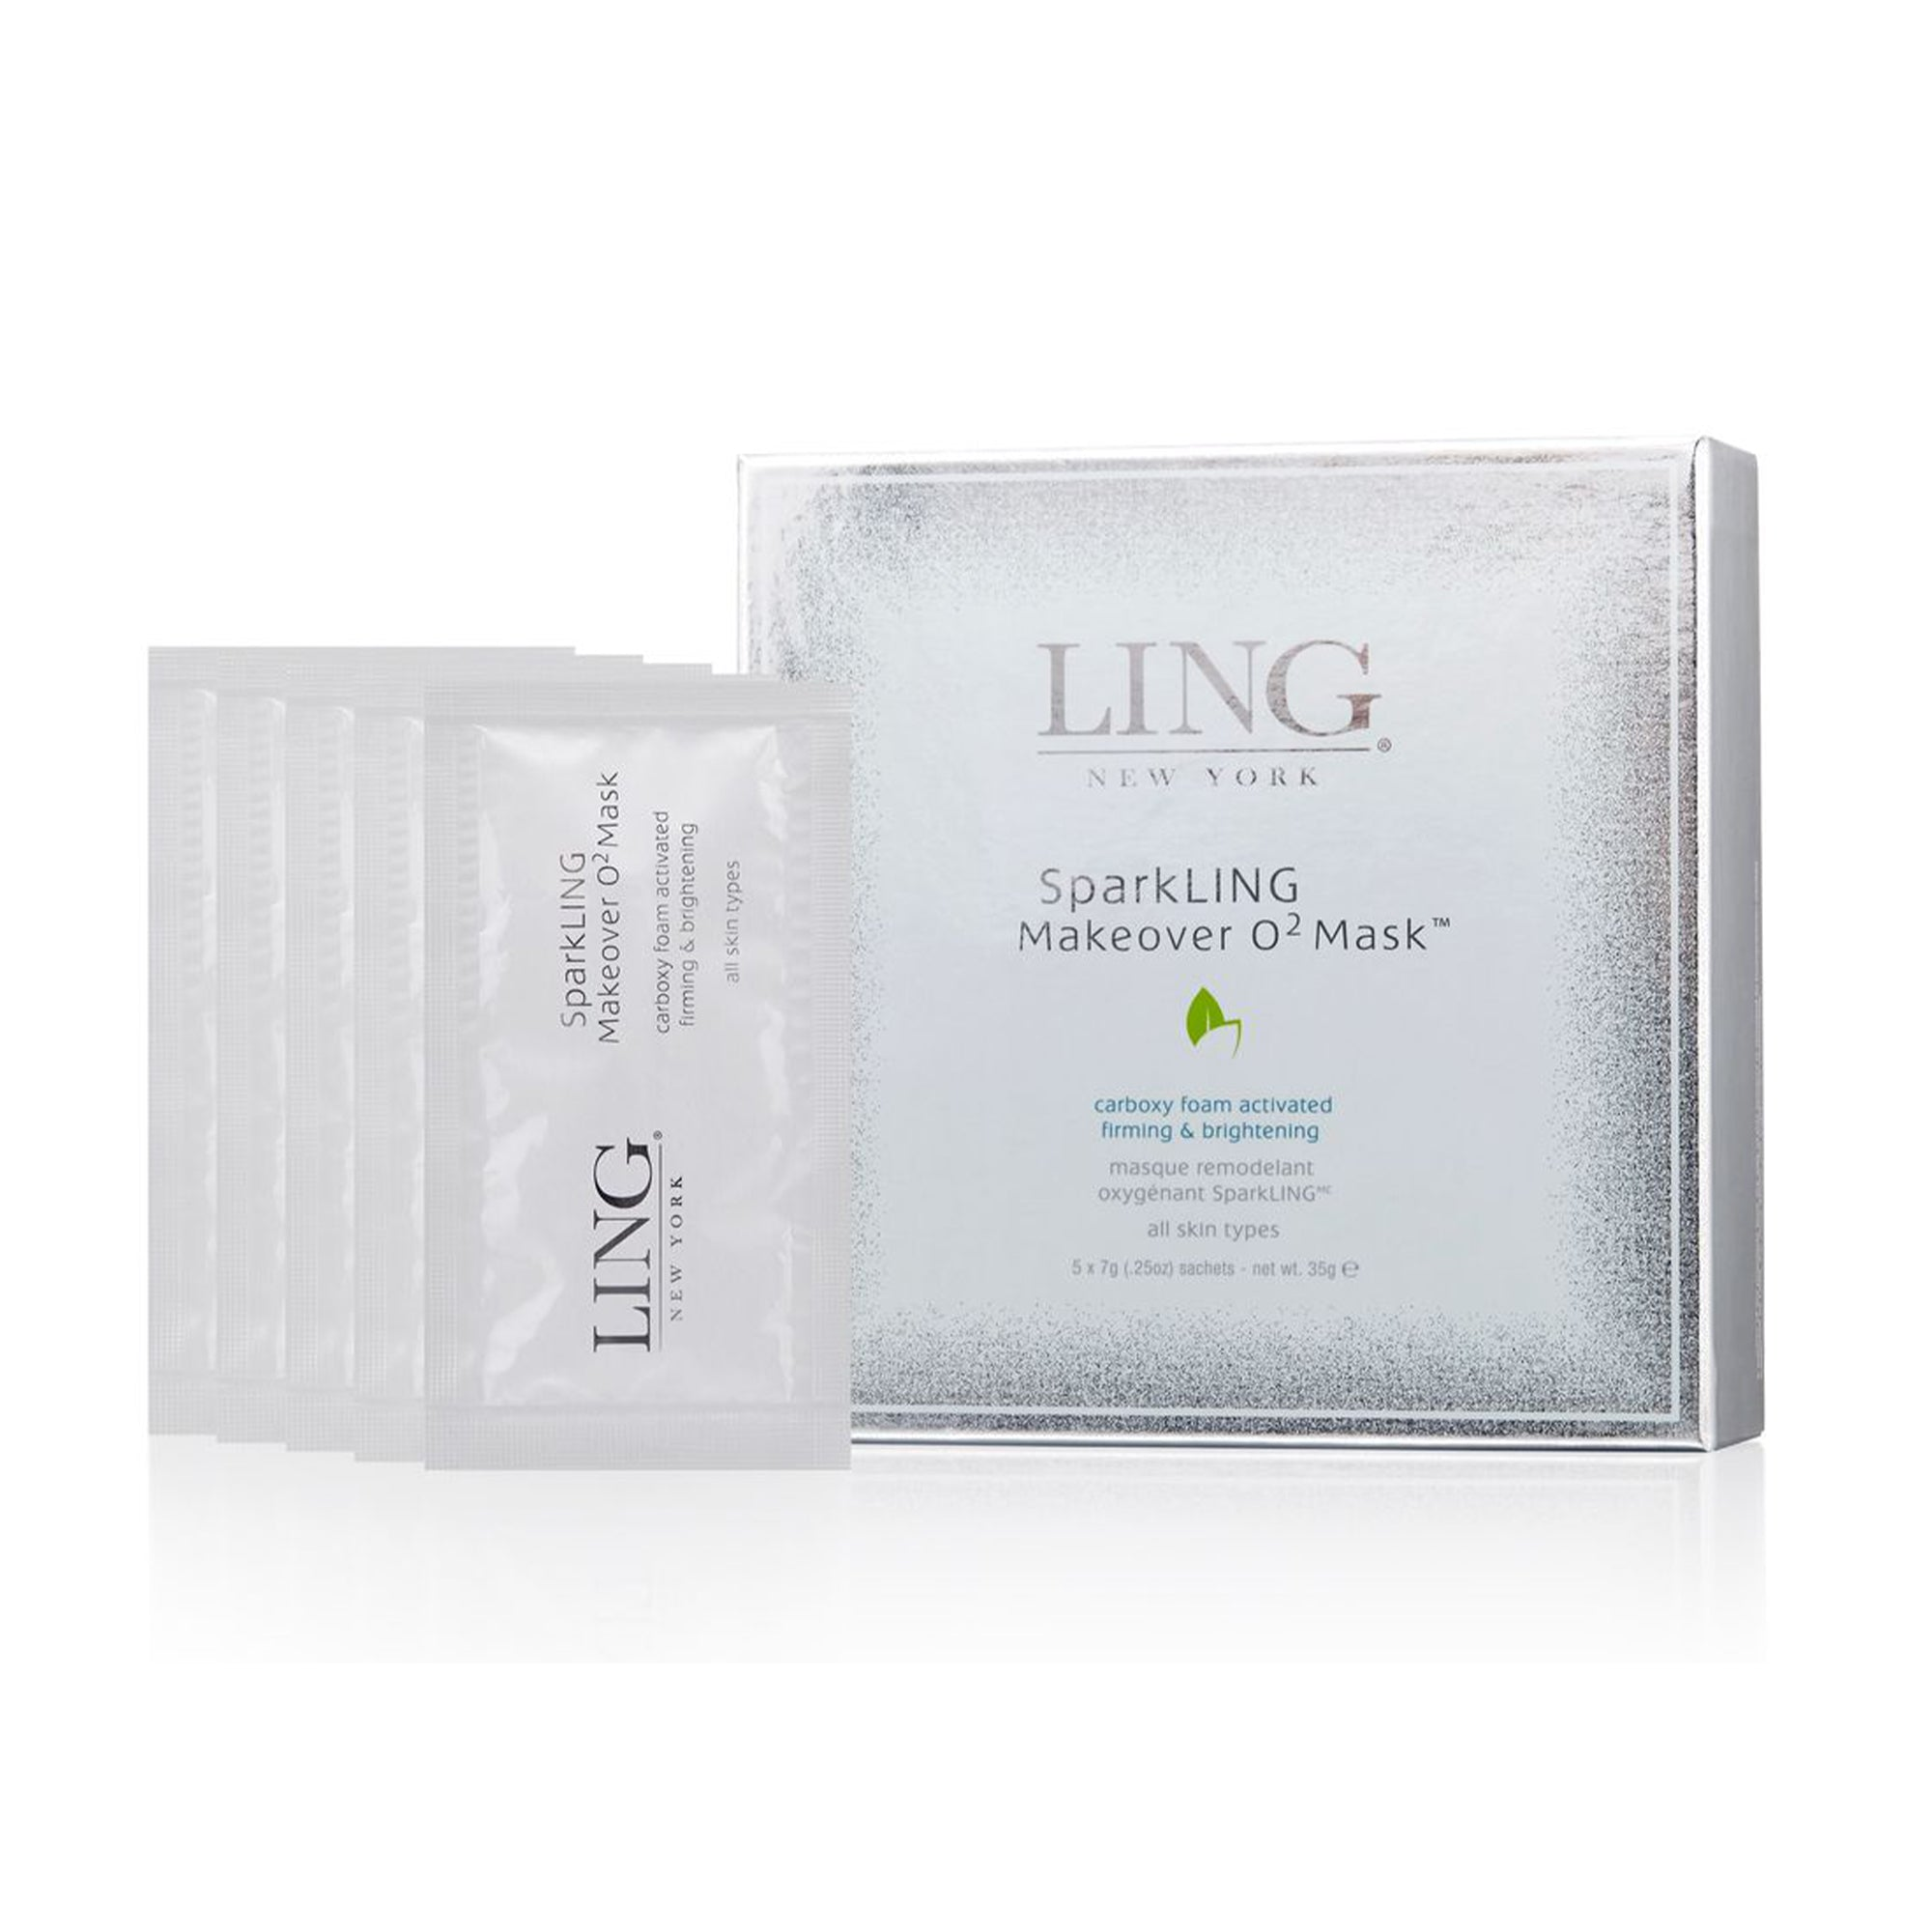 Purchase LING SparkLING Makeover O2 Mask from Delaire Graff Spa